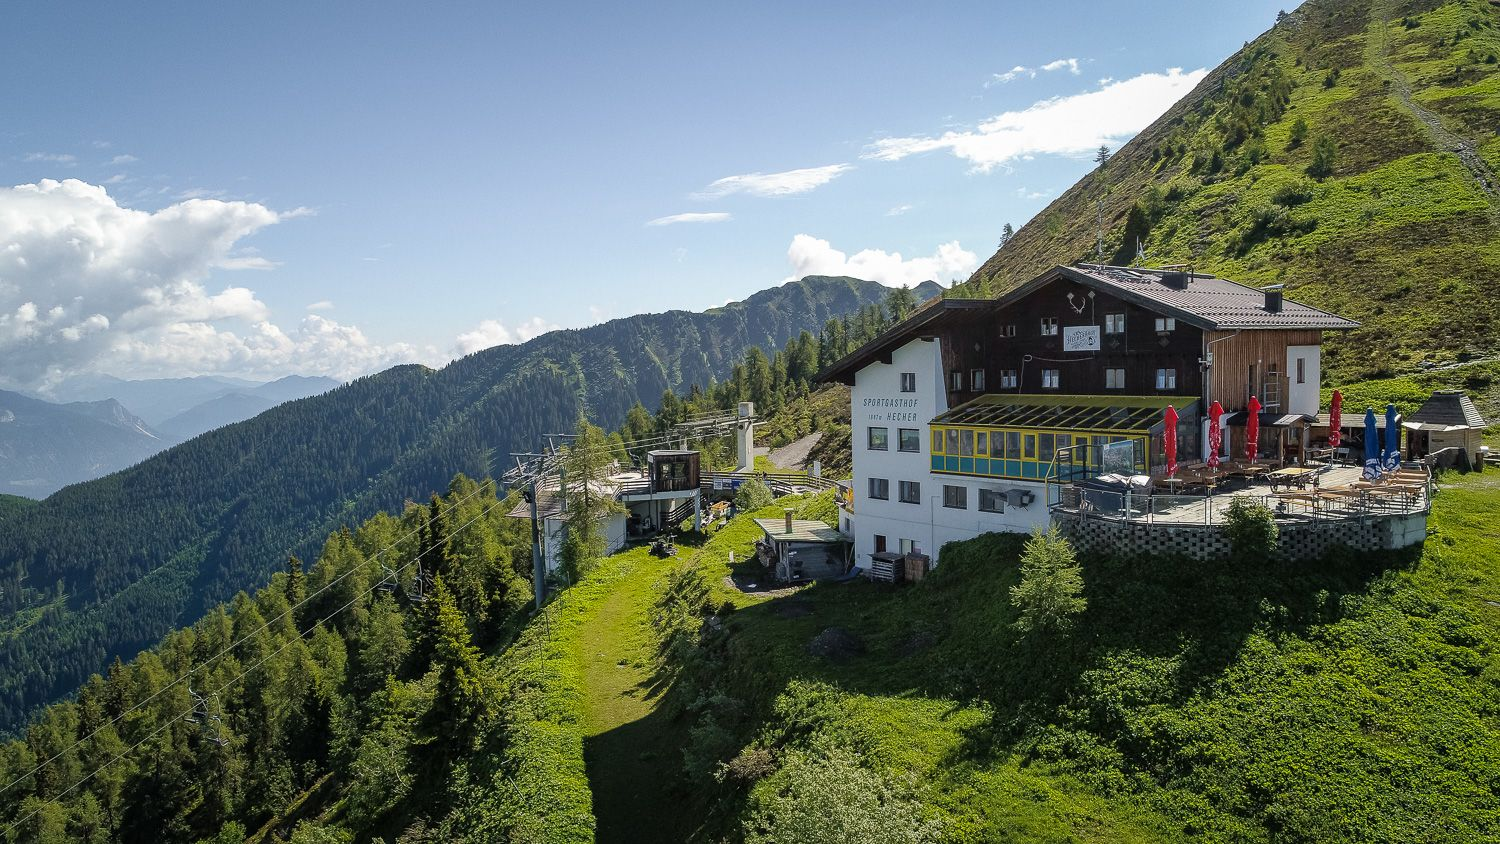 Hecherhaus Alpine Lodge